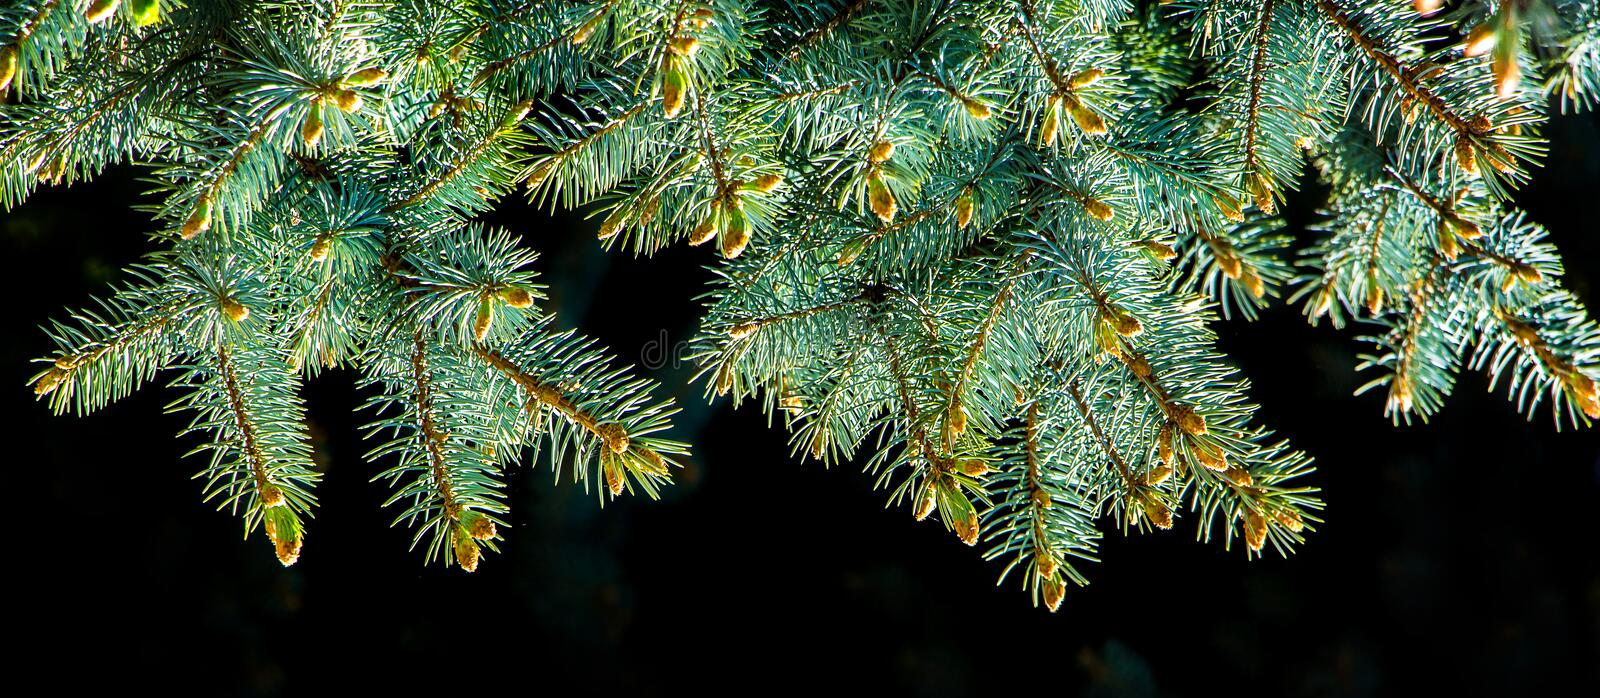 Branch of Christmas tree with fresh green needles on black isolated background_ royalty free stock photos